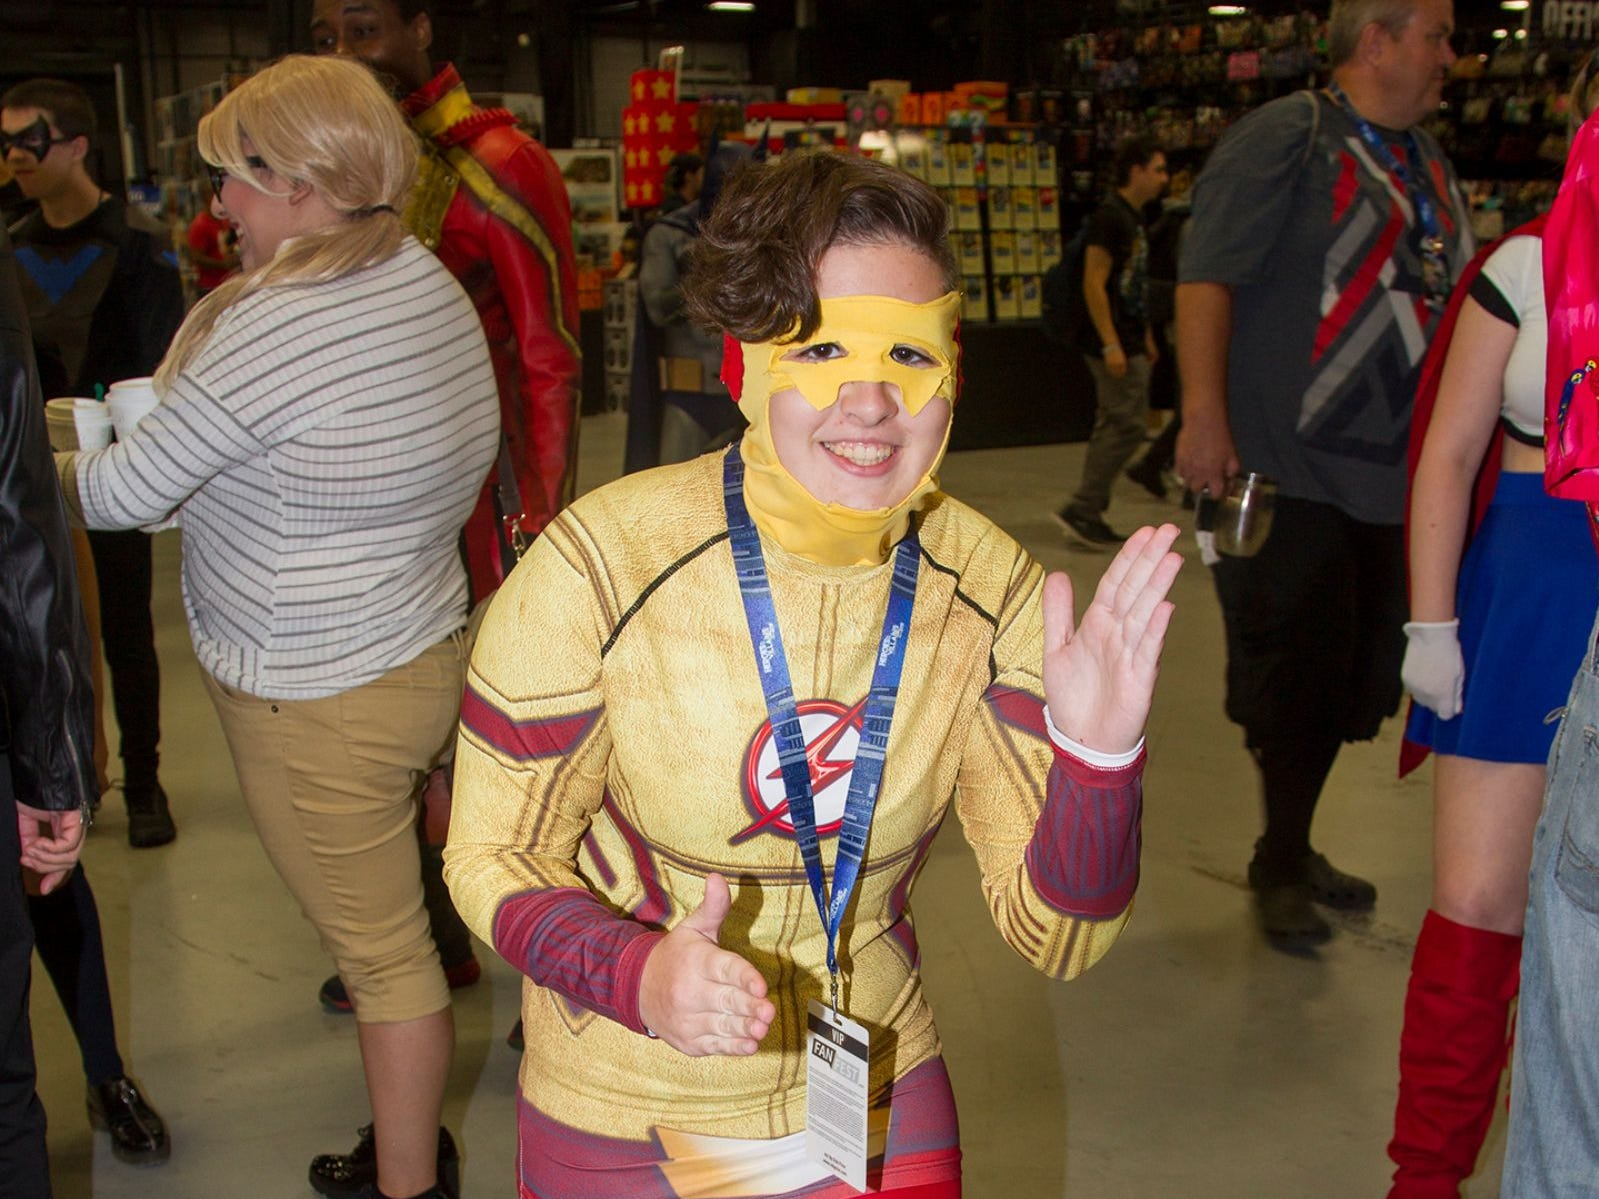 The Flash. The 2018 Heroes and Villains Fan Fest took place at the New Jersey Convention & Expo Center. 09/09/2018